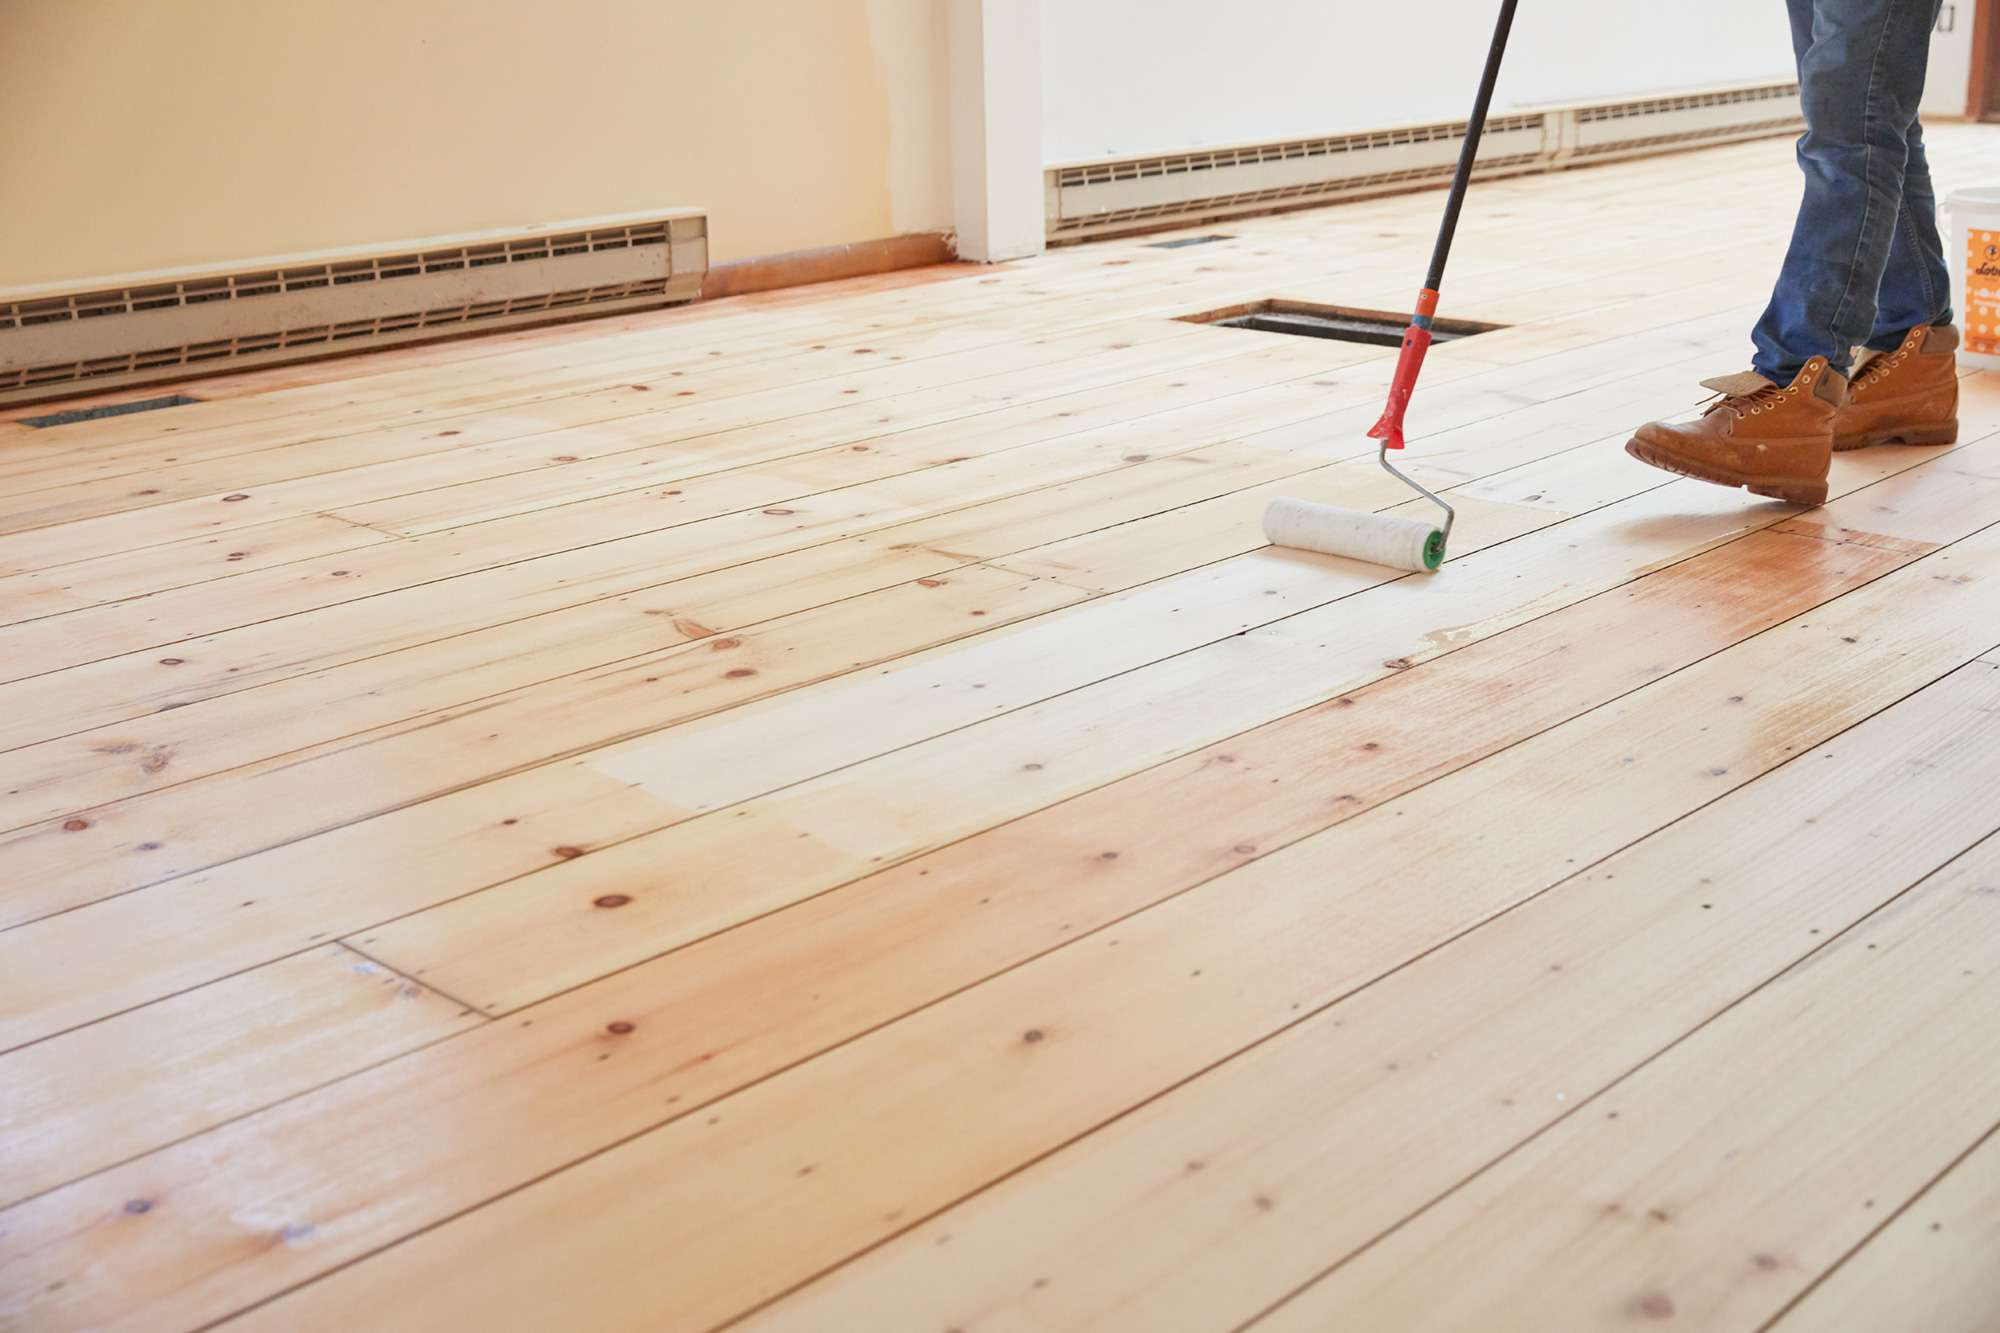 Hardwood floors painted with water or oil-based polyurethane for topcoat